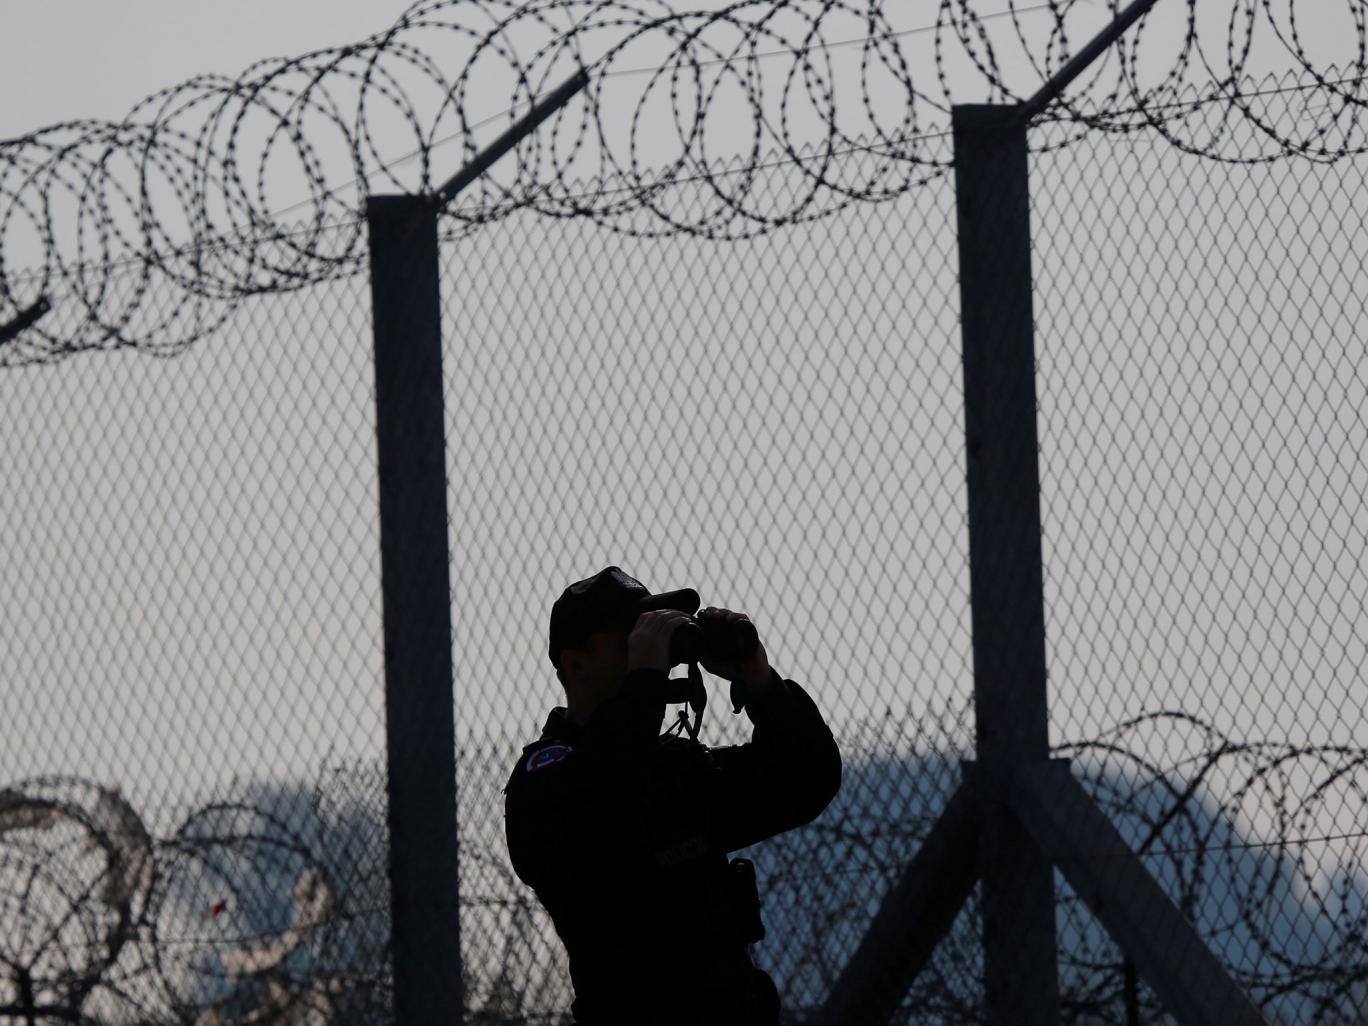 Hungarian border guards 'taking selfies with beaten migrants' as crackdown against refugees intensifies